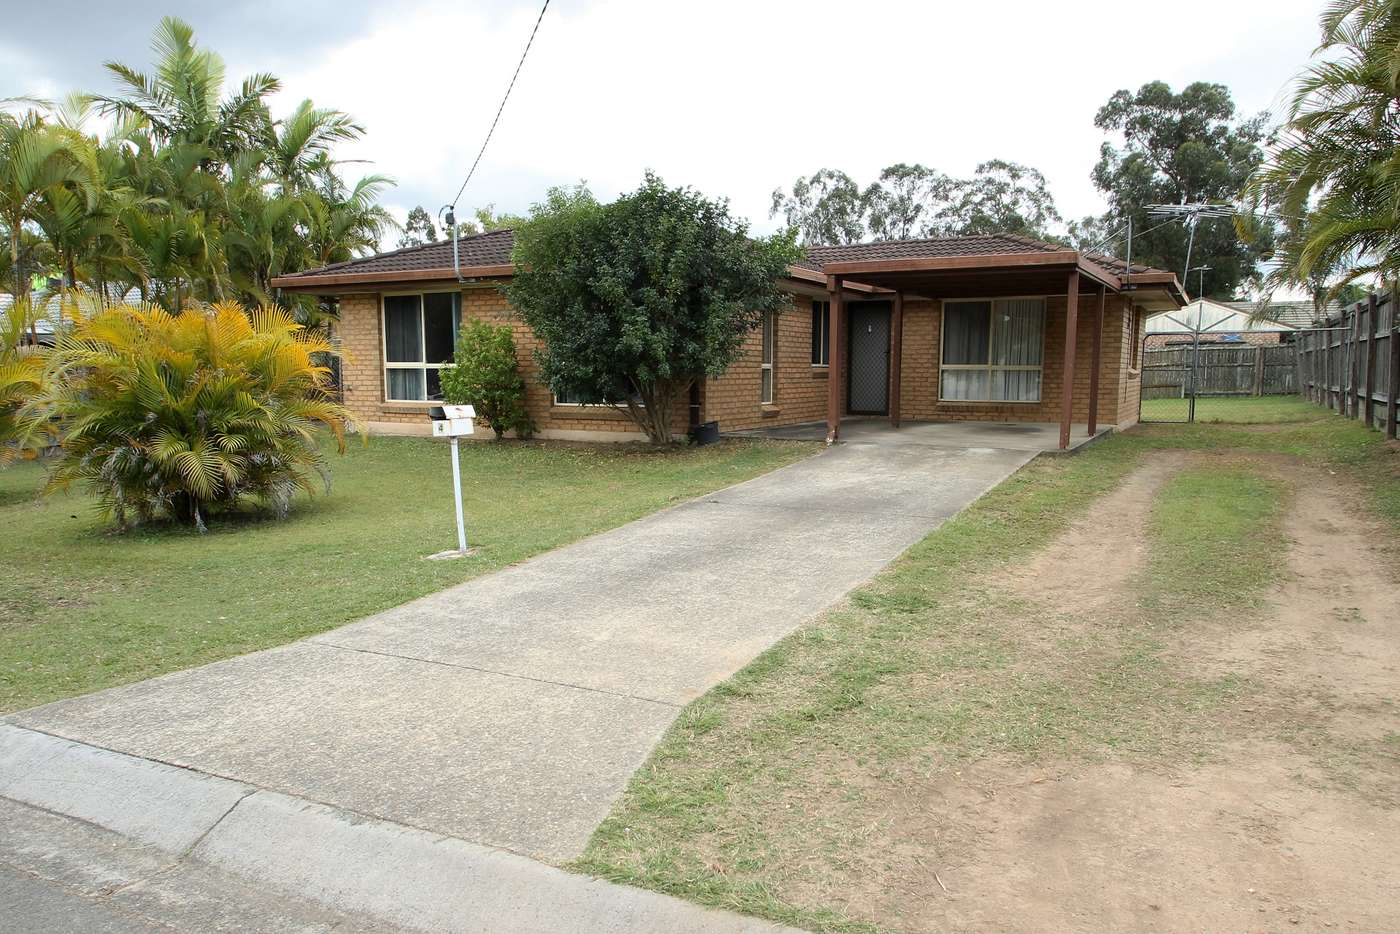 Main view of Homely house listing, 4 Callide Crt, Marsden QLD 4132